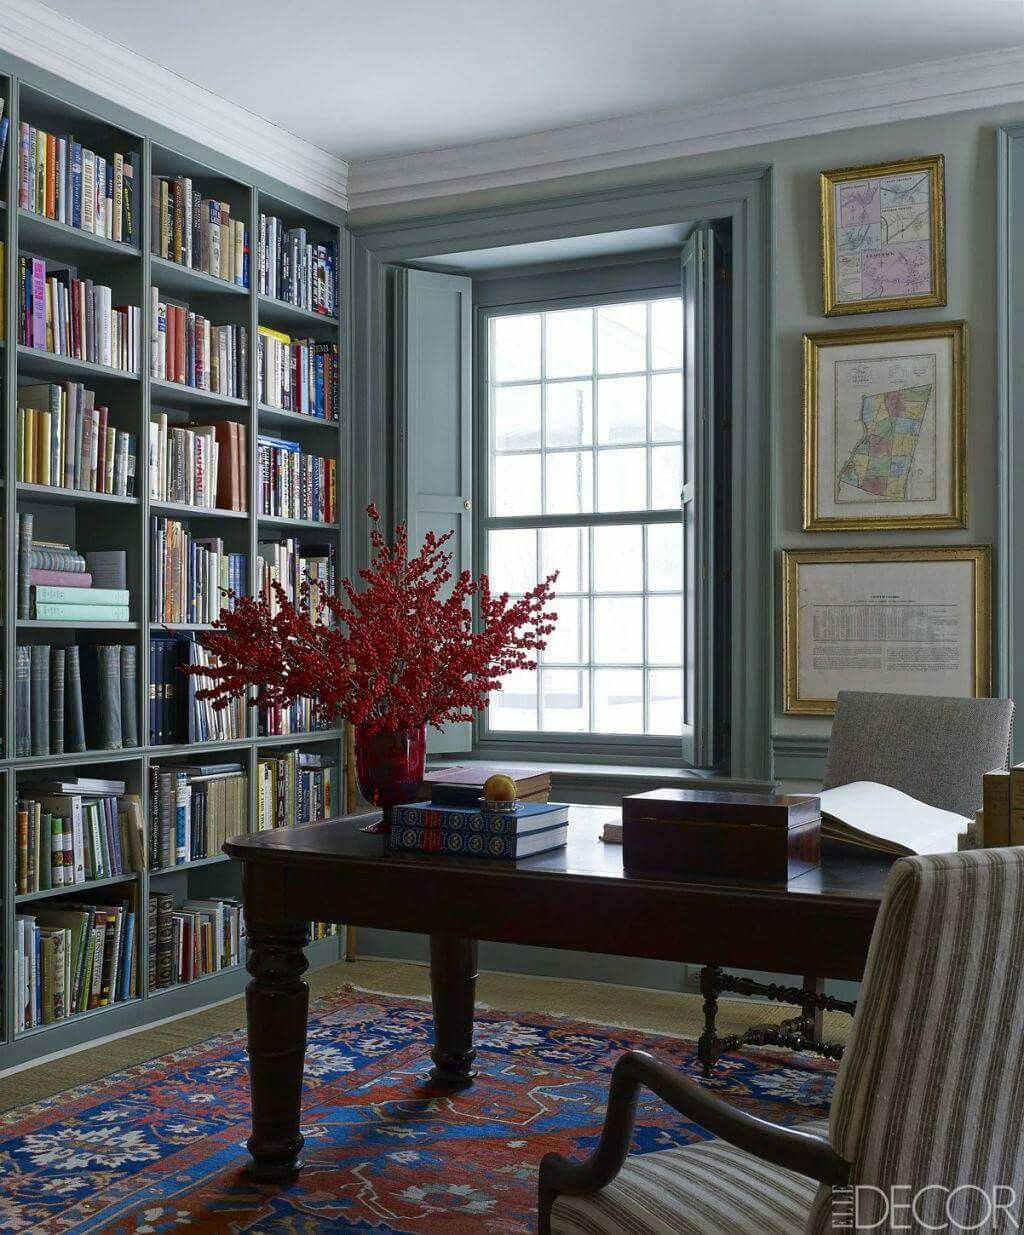 Bookshelves Library Home Library Library Table Table Center Of Room Home Decor House Interior Home